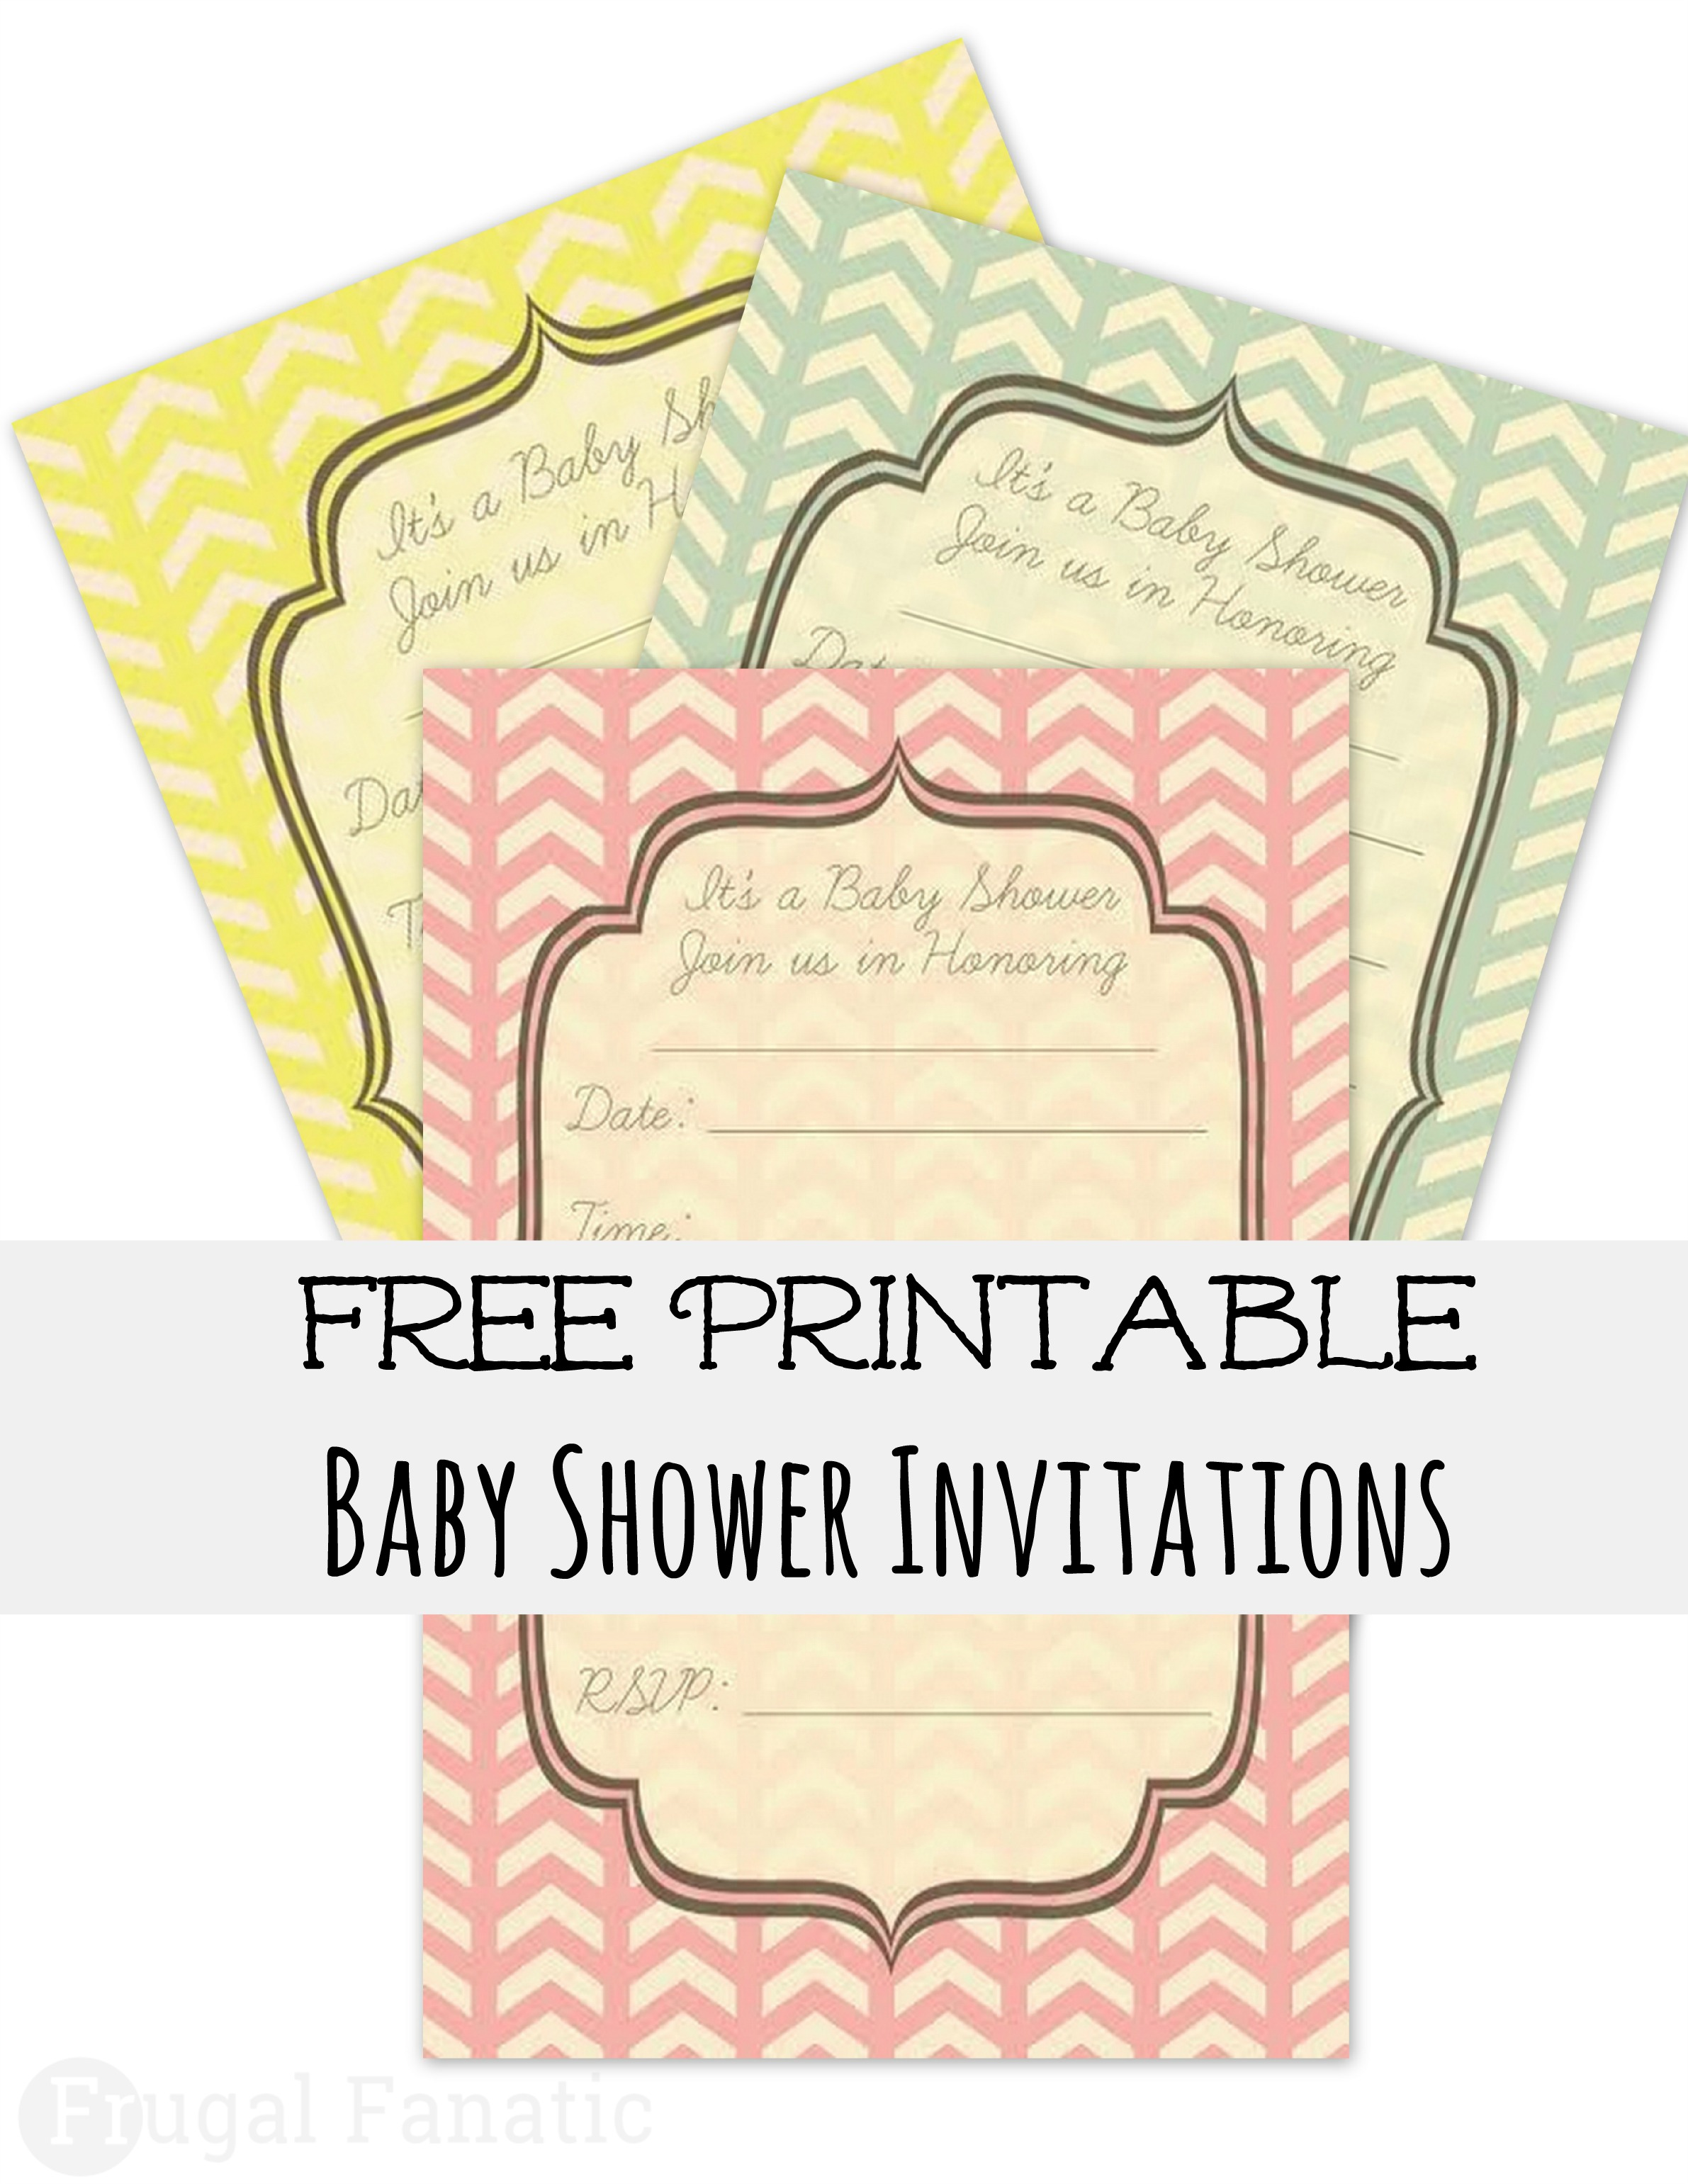 7 Images of Free Printable Baby Shower Inv